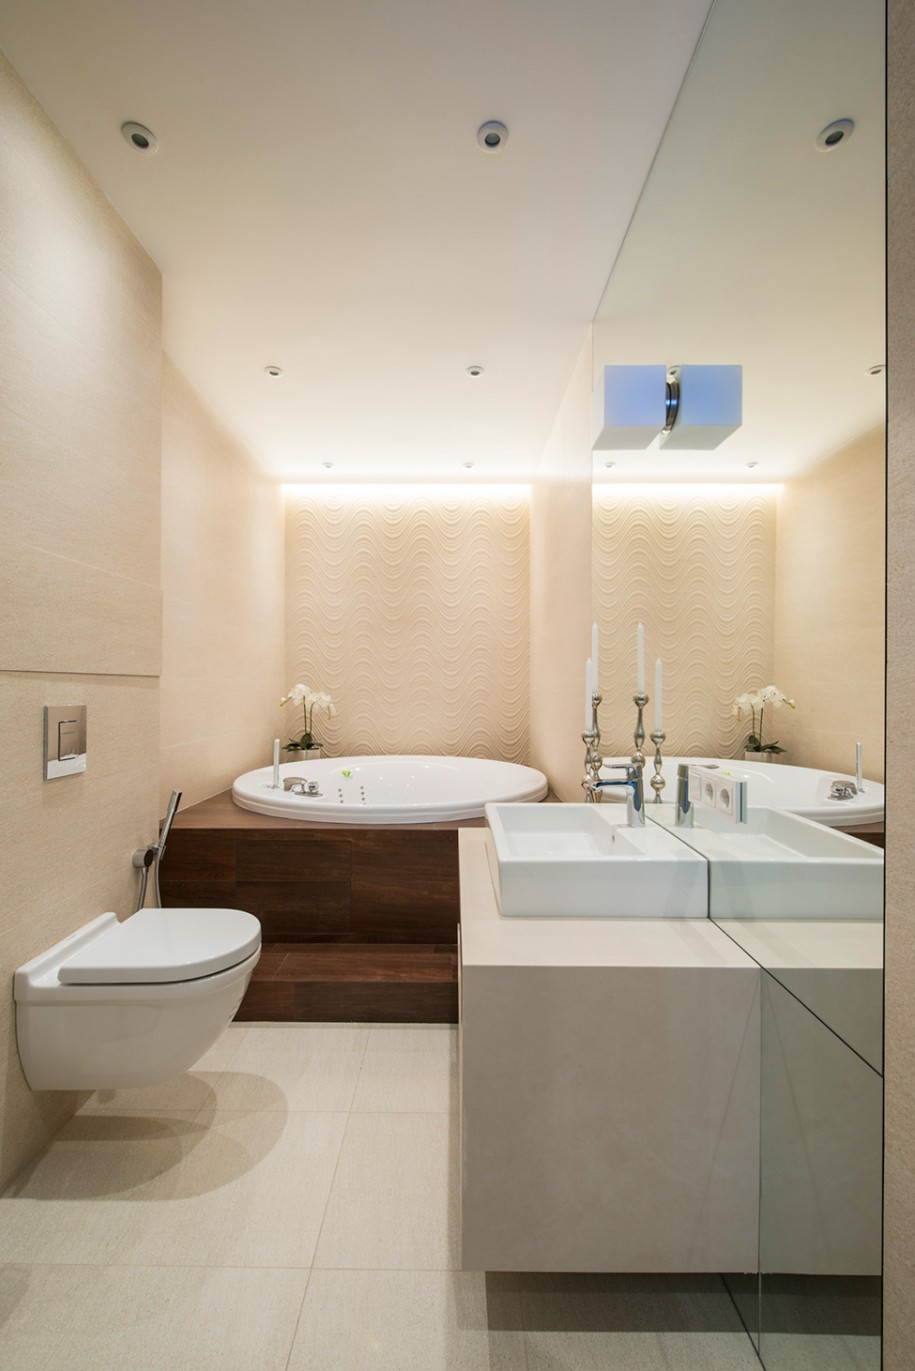 Amazing-Round-Drop-In-Tub-In-Luxury-Small-Bathroom-Design